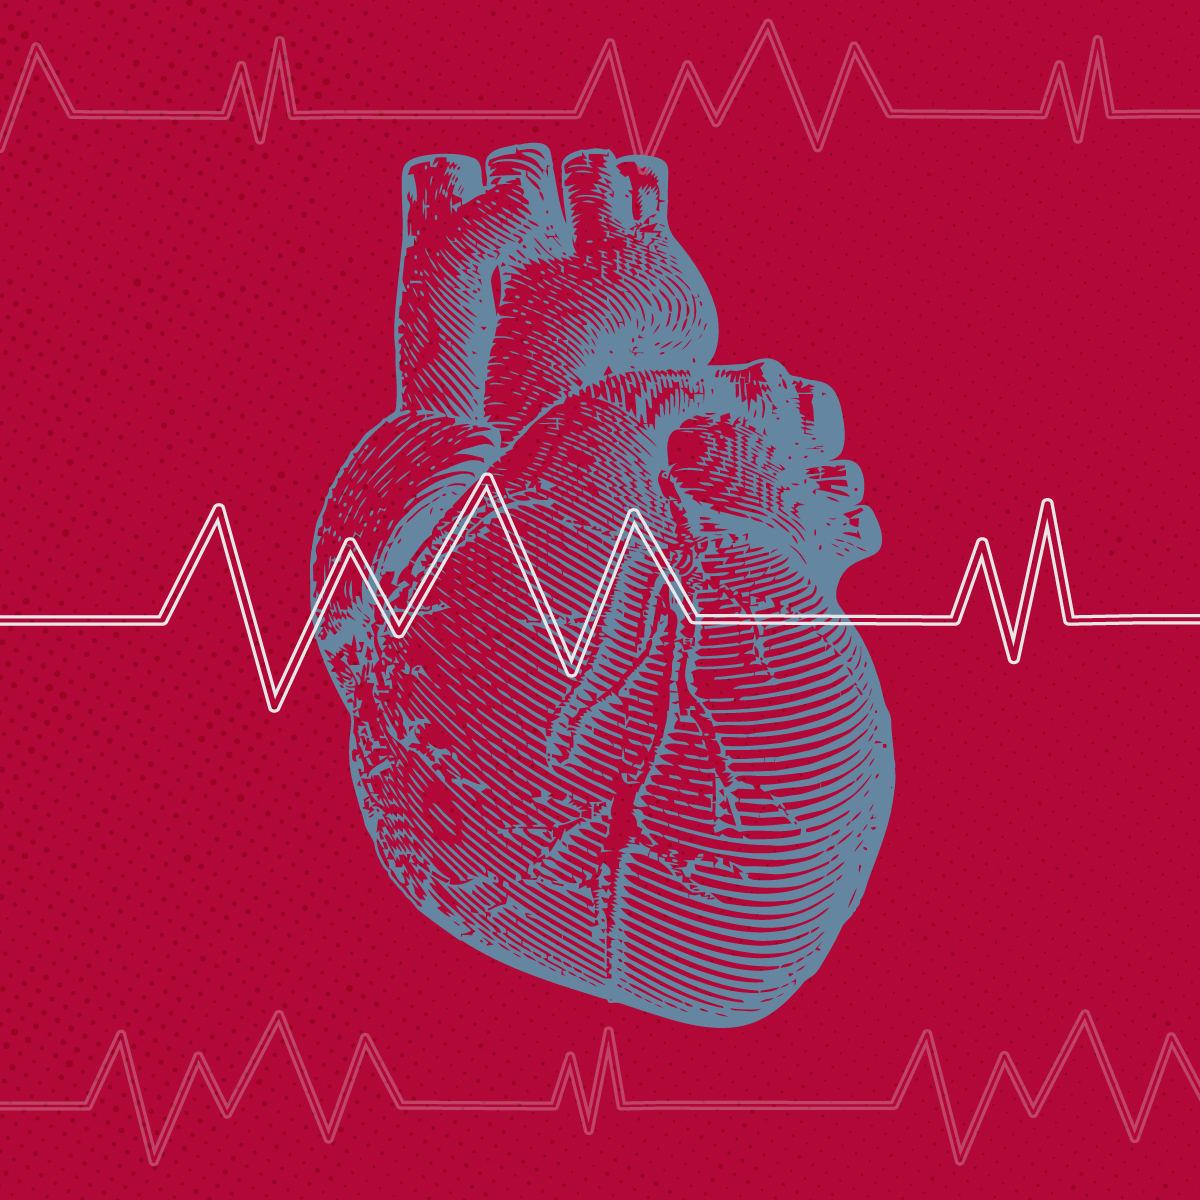 What Is Heart Disease? Cardiovascular Health Problems Explained Square